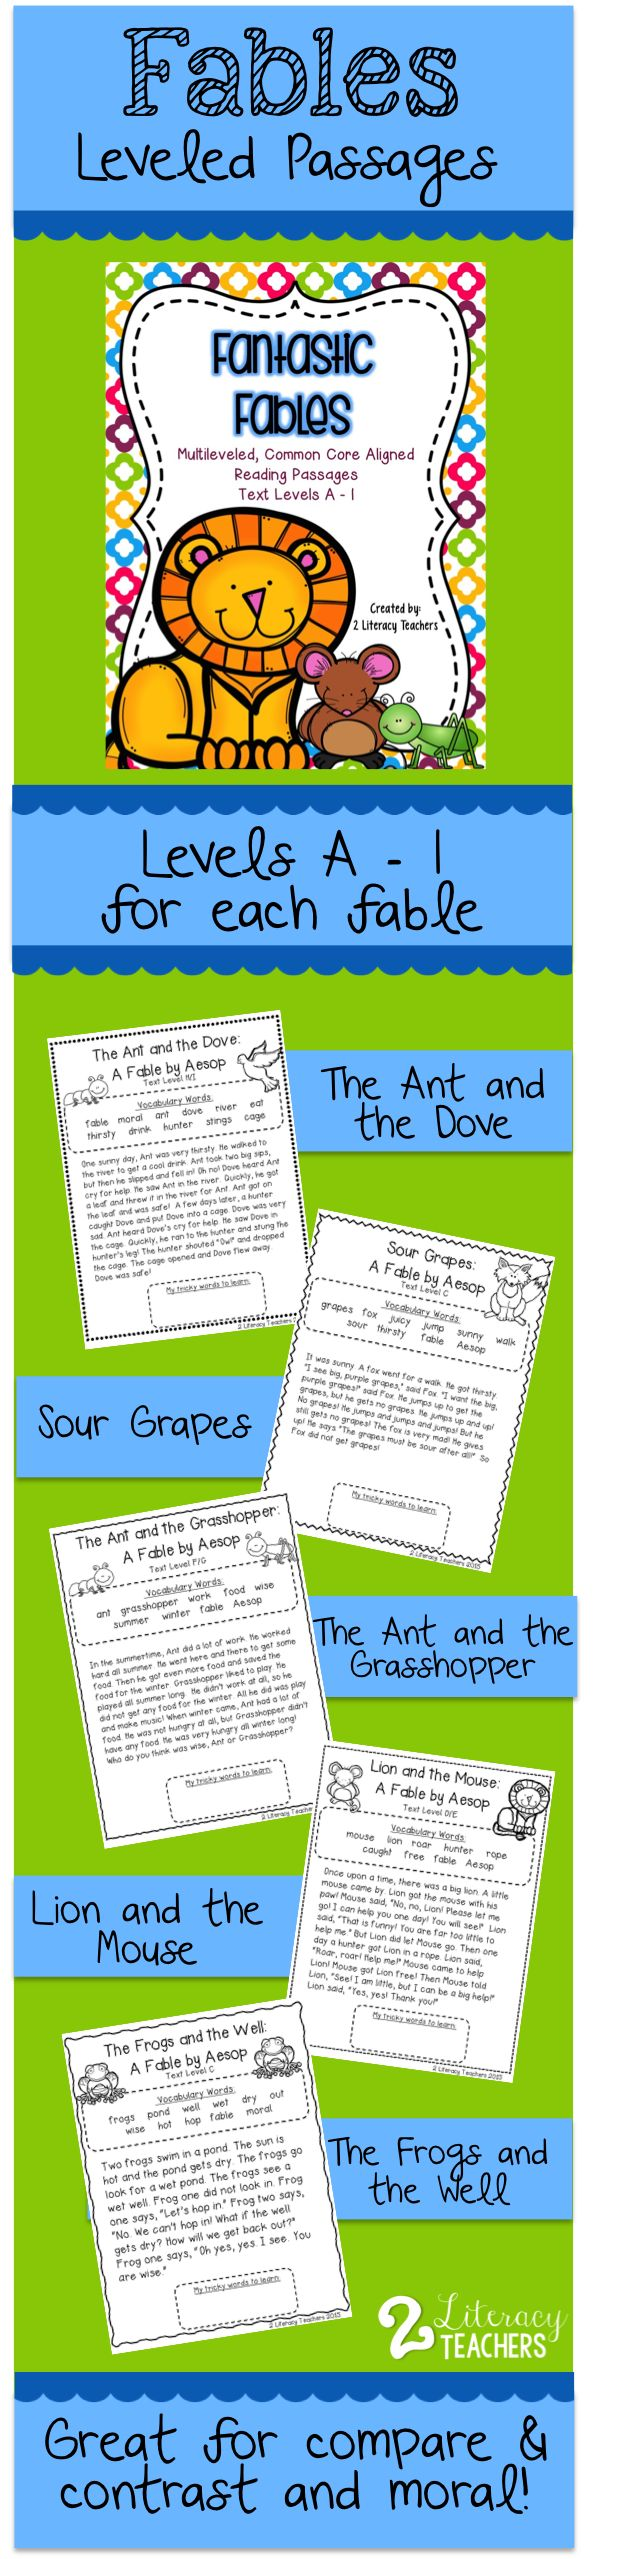 Fables leveled passages! Each fable has 6 different levels. Perfect for differentiation! Use for guided reading, whole group, partner work, individual work or homework. Great for comparing and contrasting and identifying moral. Fables included are The Ant and the Grasshopper, The Ant and the Dove, The Frogs and the Well, Lion and the Mouse and Sour Grapes.